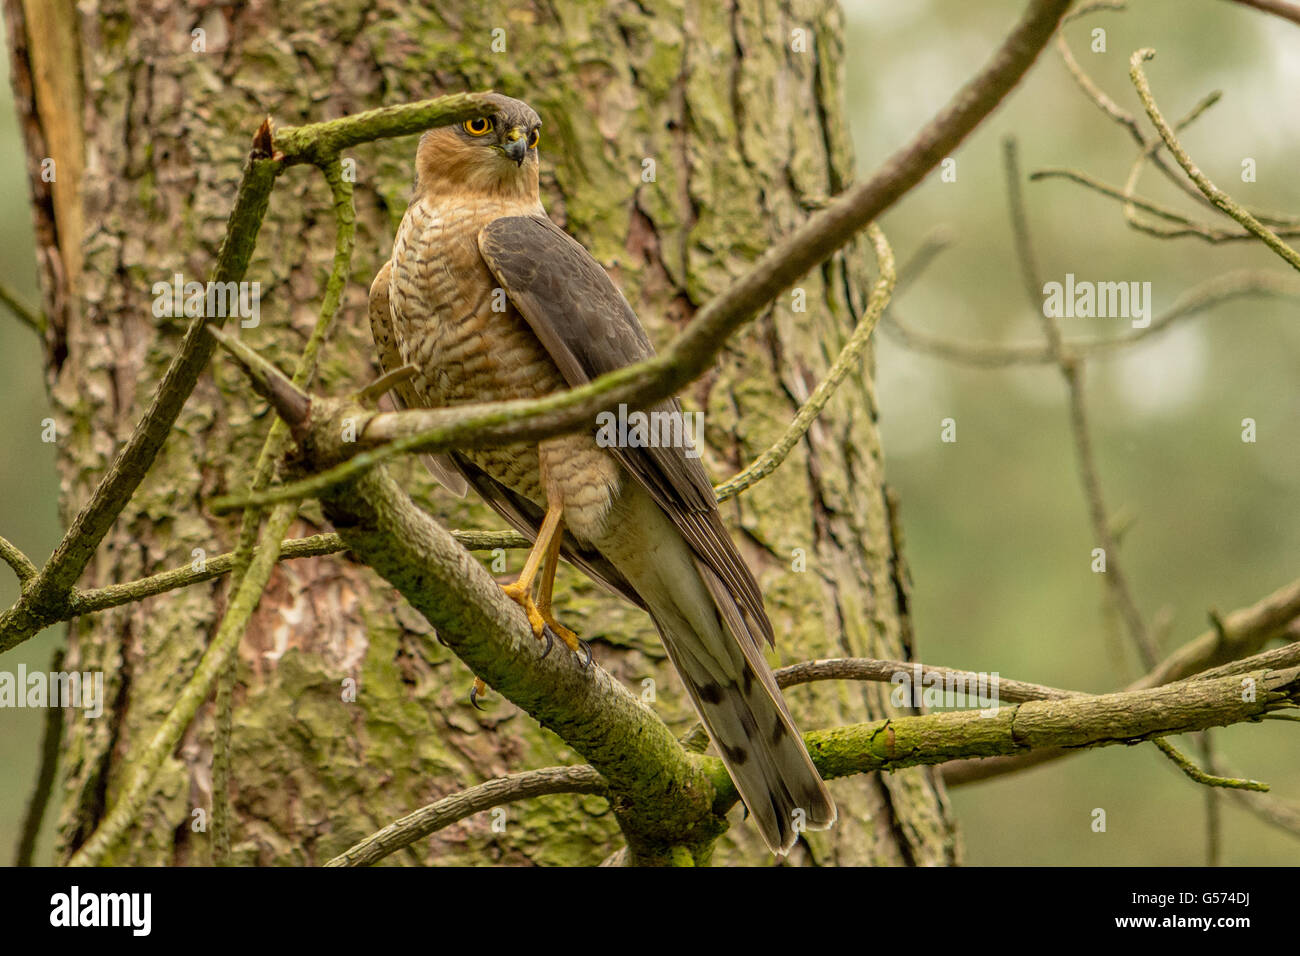 A sparrow hawk on the branch of a tree. - Stock Image